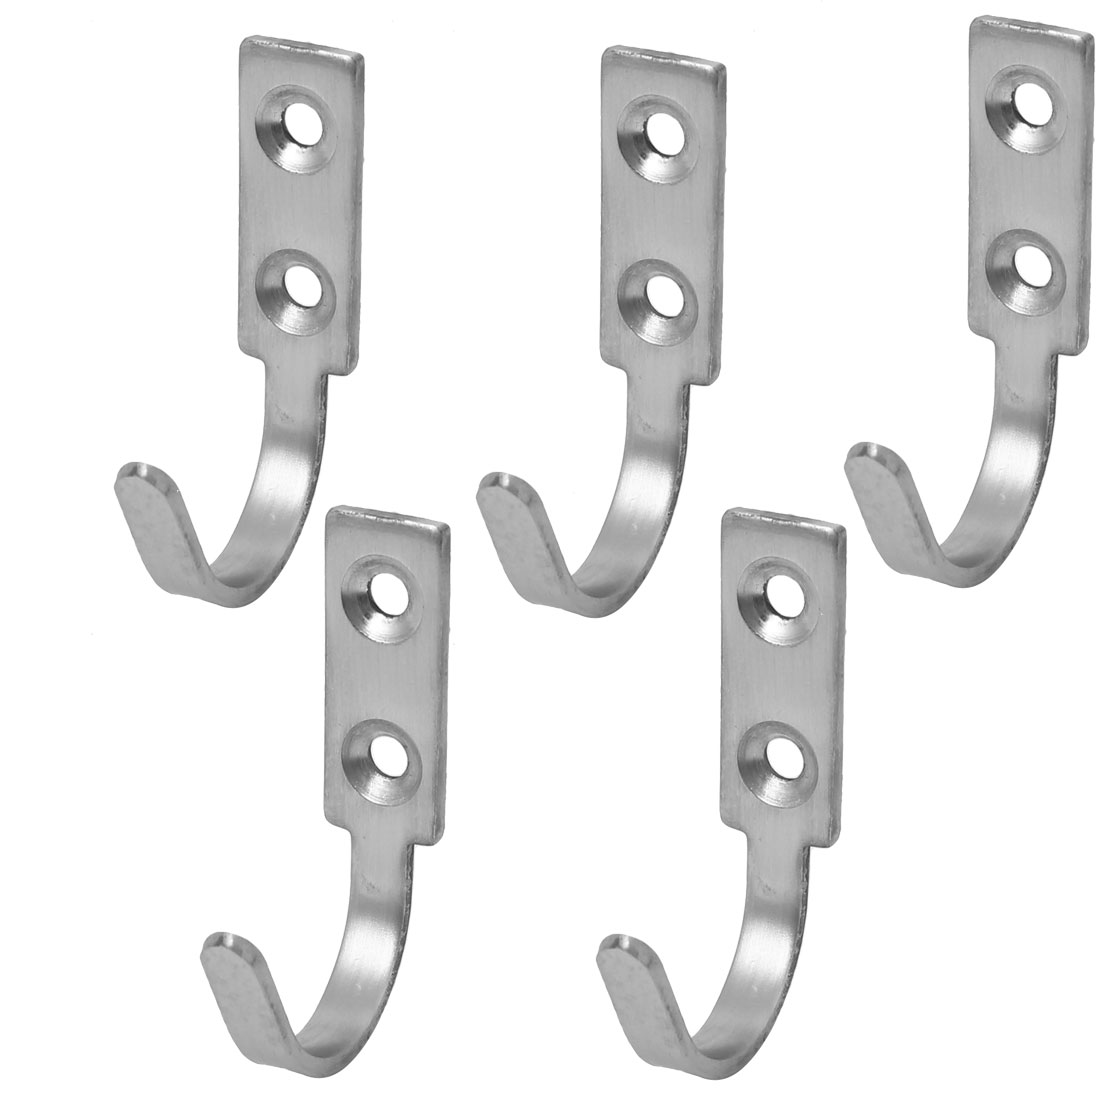 Door Wall Mounted Single Hook Clothes Towel Hanger Holder 60mm Length 5pcs